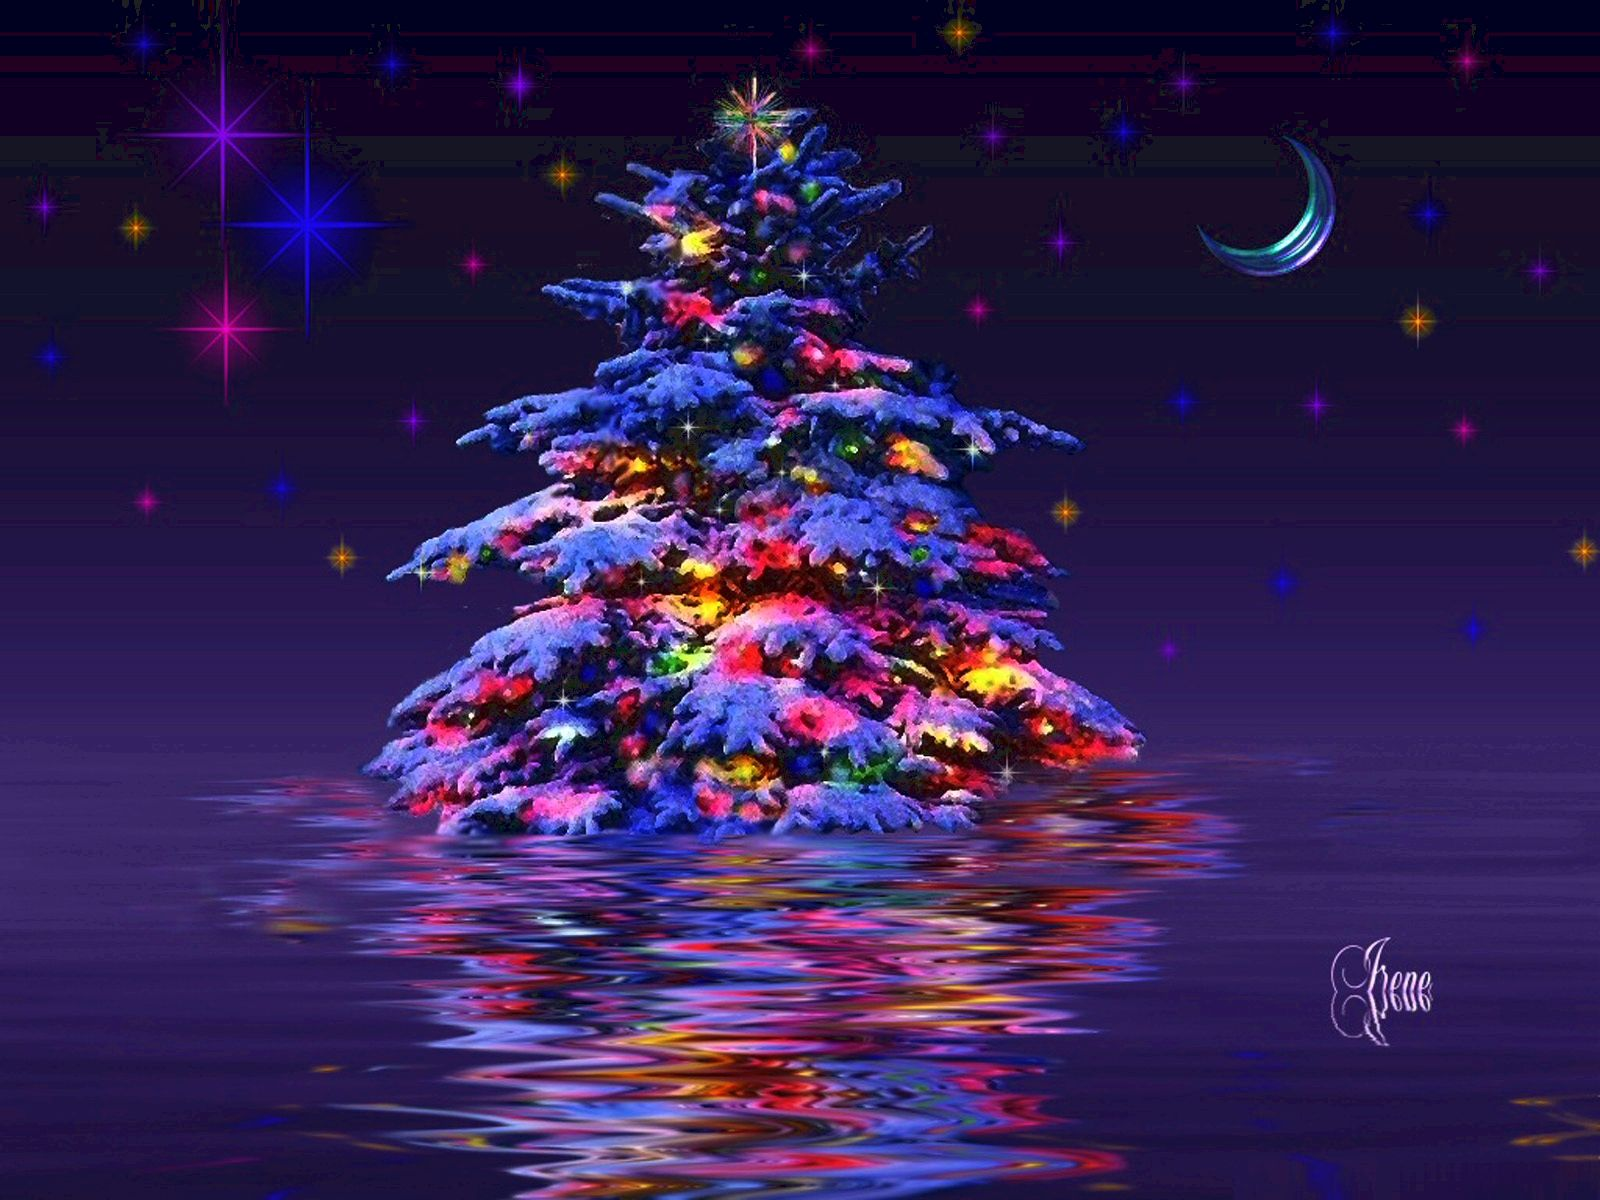 Merry Christmas Desktop Wallpaper Free Of Charge In ...